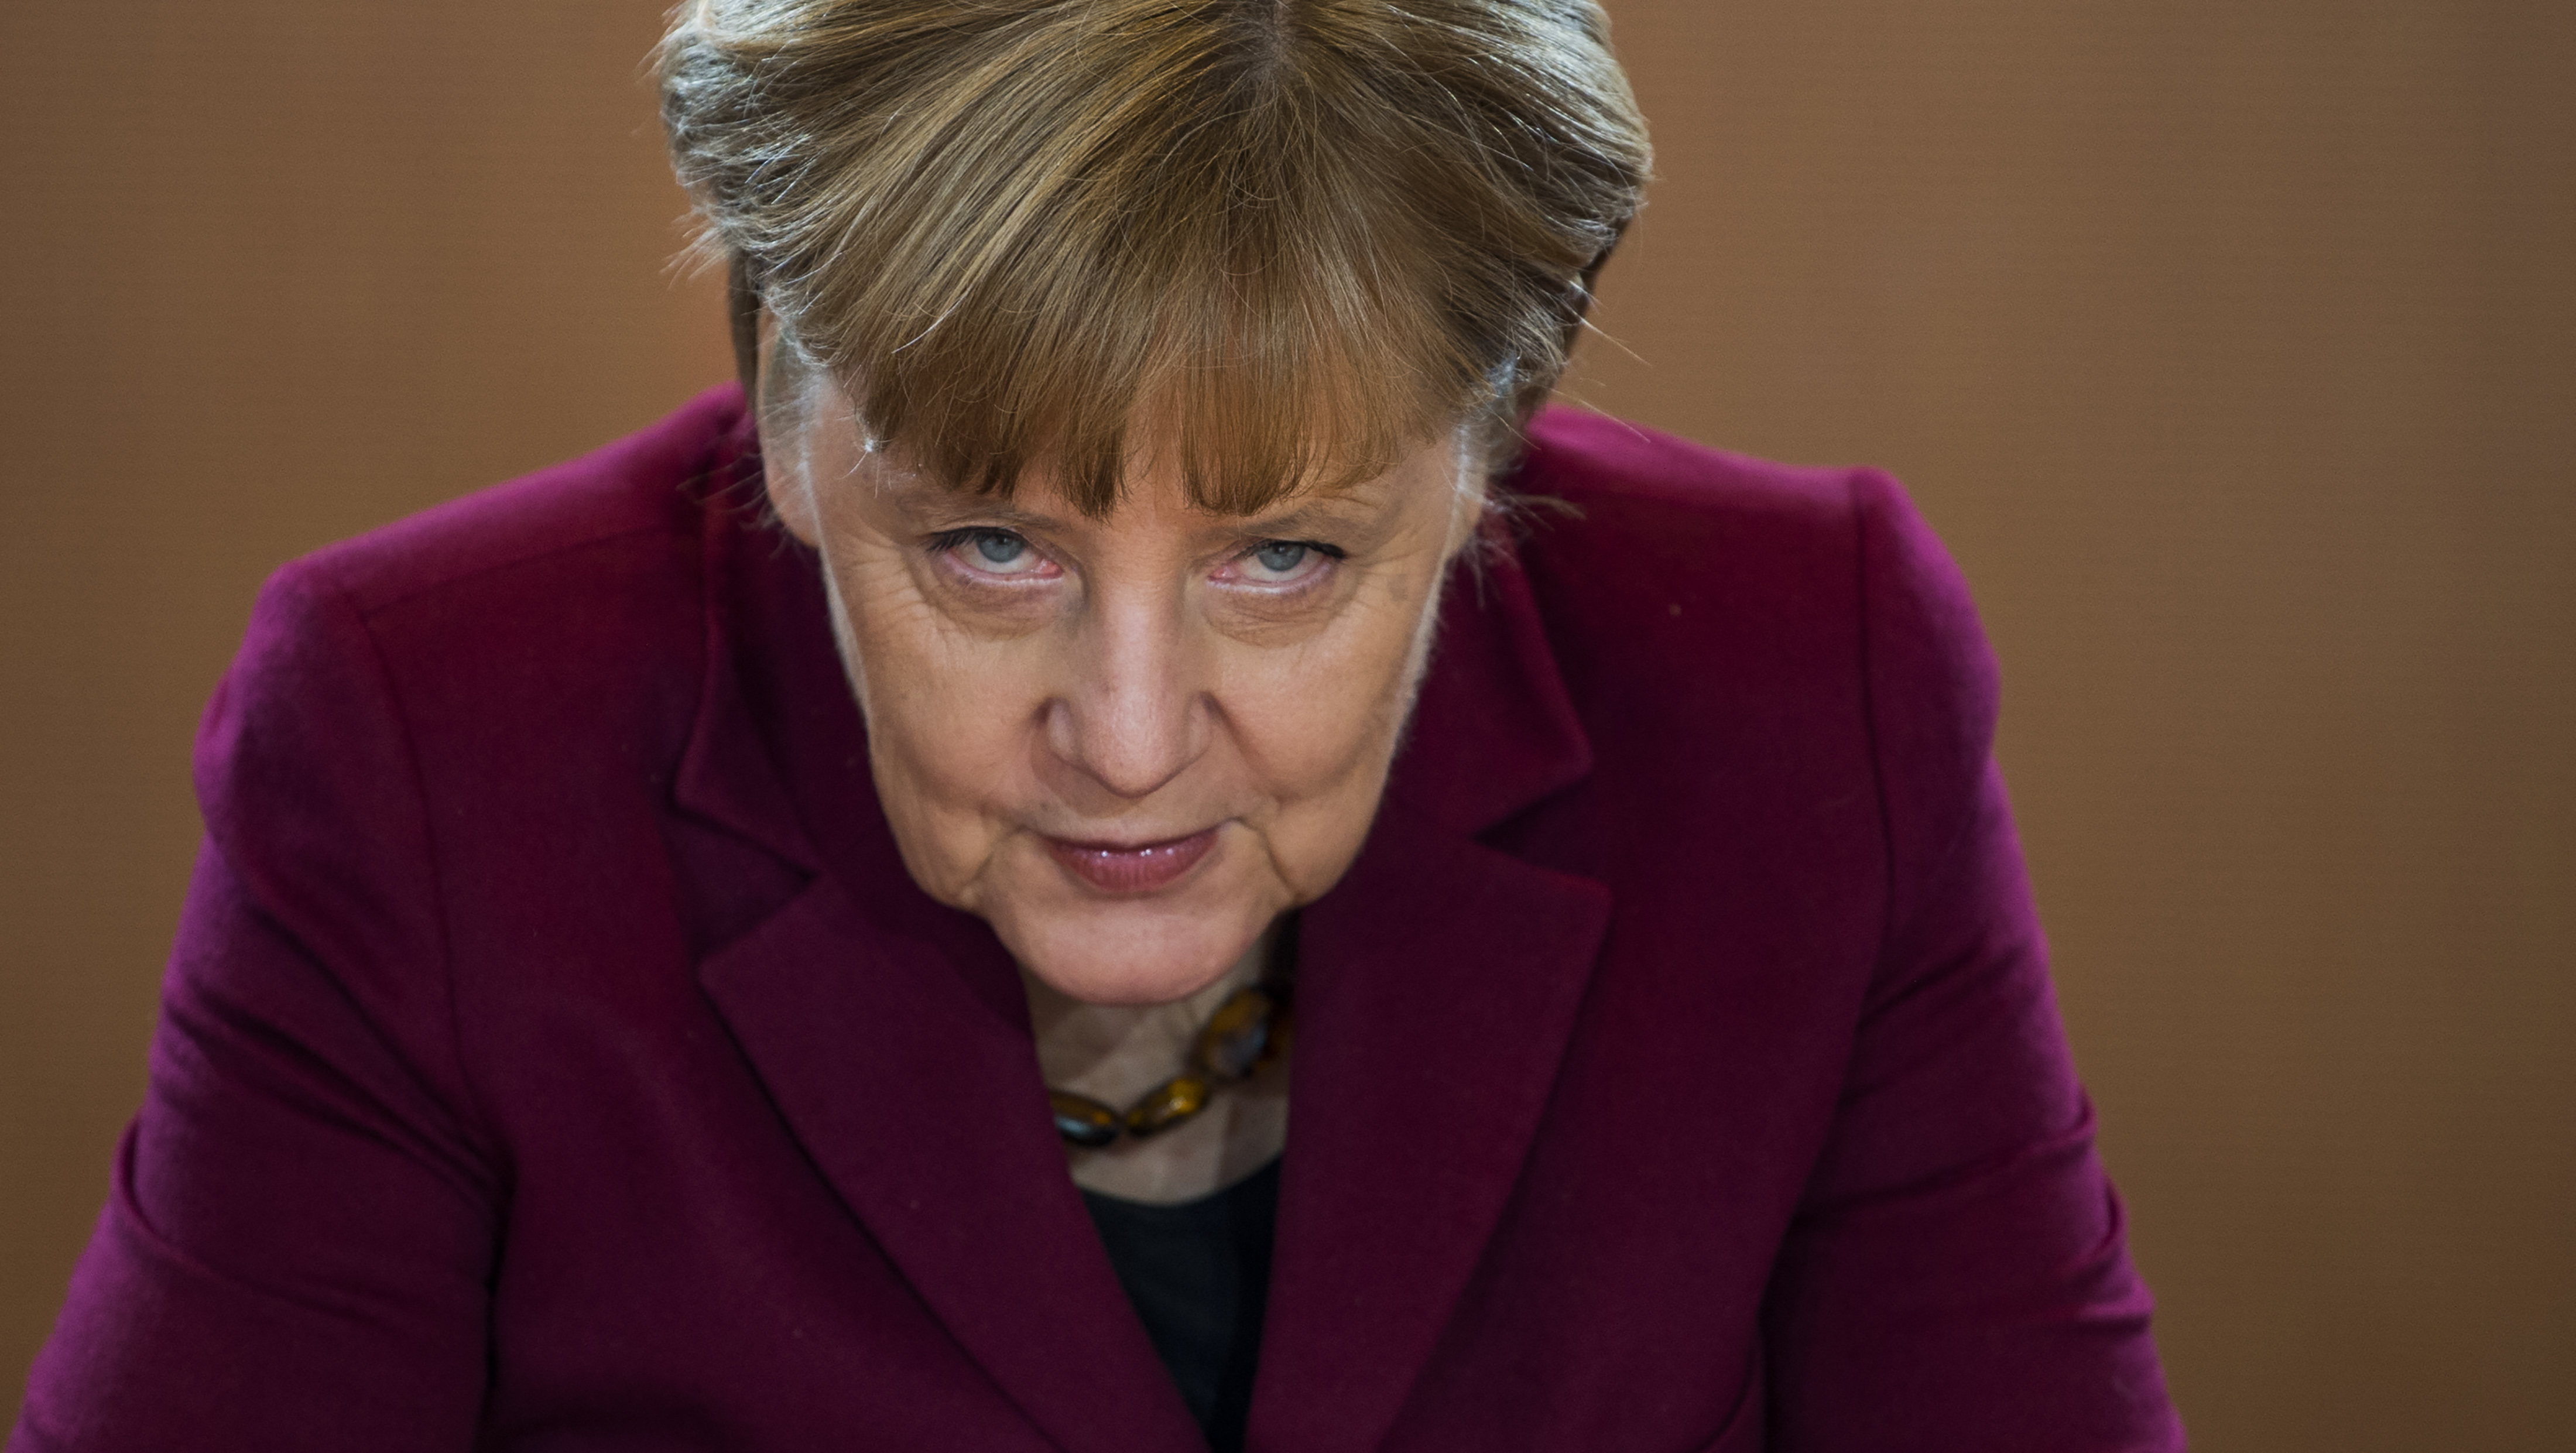 German Chancellor Angela Merkel arrives for the weekly cabinet meeting at the Chancellery in Berlin on December 9, 2016.